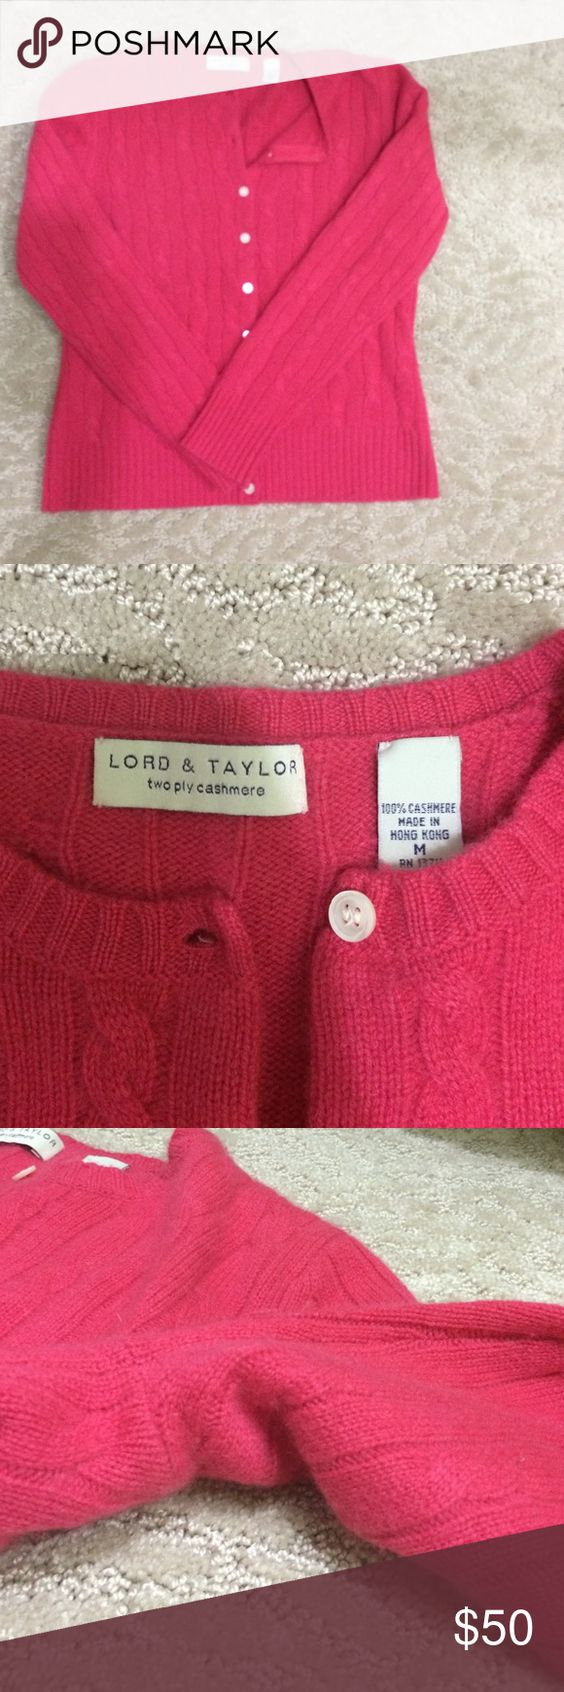 Pretty Raspberry Cashmere Cableknit Cardigan Lovely raspberry coloured button down cardigan. Cableknit with two ply cashmere. Minimal pilling, under arm (tried to capture in photo but so slight it was difficult!). Worn a handful of times, great condition! Lord & Taylor Sweaters Cardigans